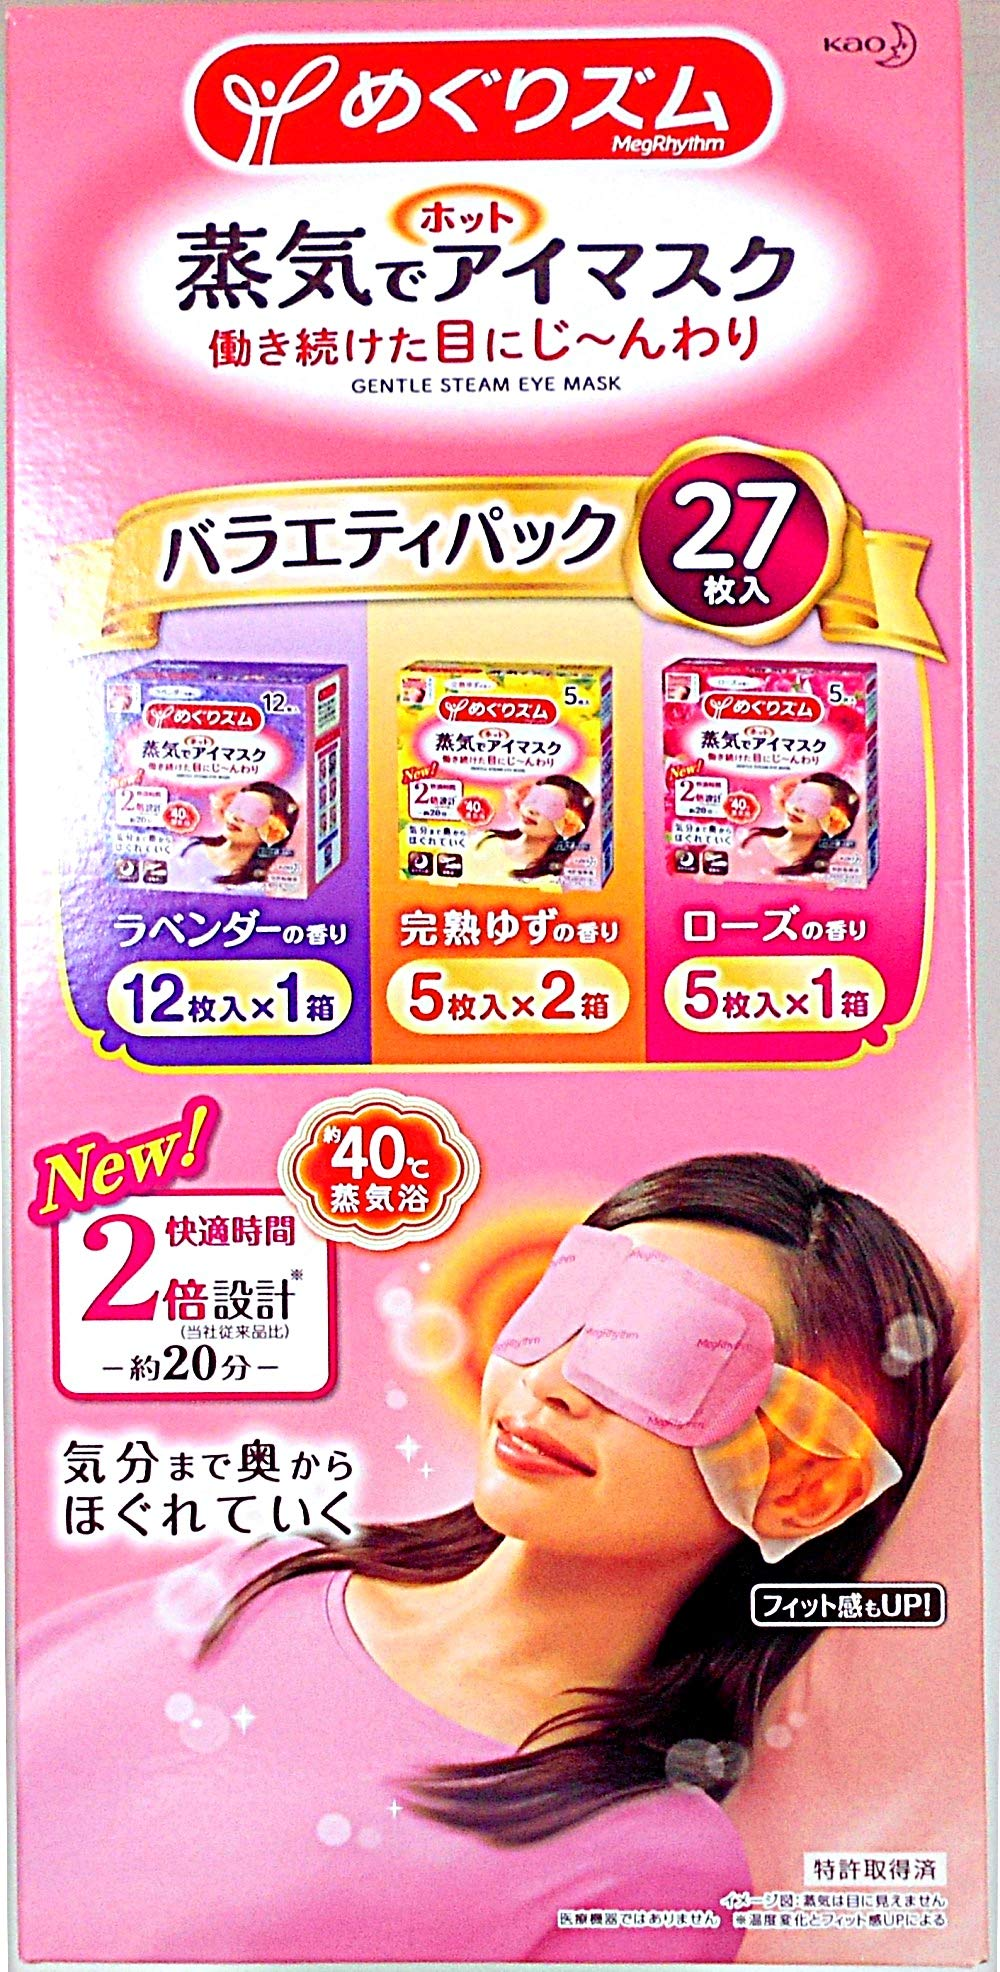 Kao,Megurism Countermeasure Steam with 27 Hot Steam Warming Eye Mask・ Lavender 12Sheets,Yuzu10 Sheets,  Rose 5Sheets Assorted Flavors Ideal Gift Variety Pack by KAO